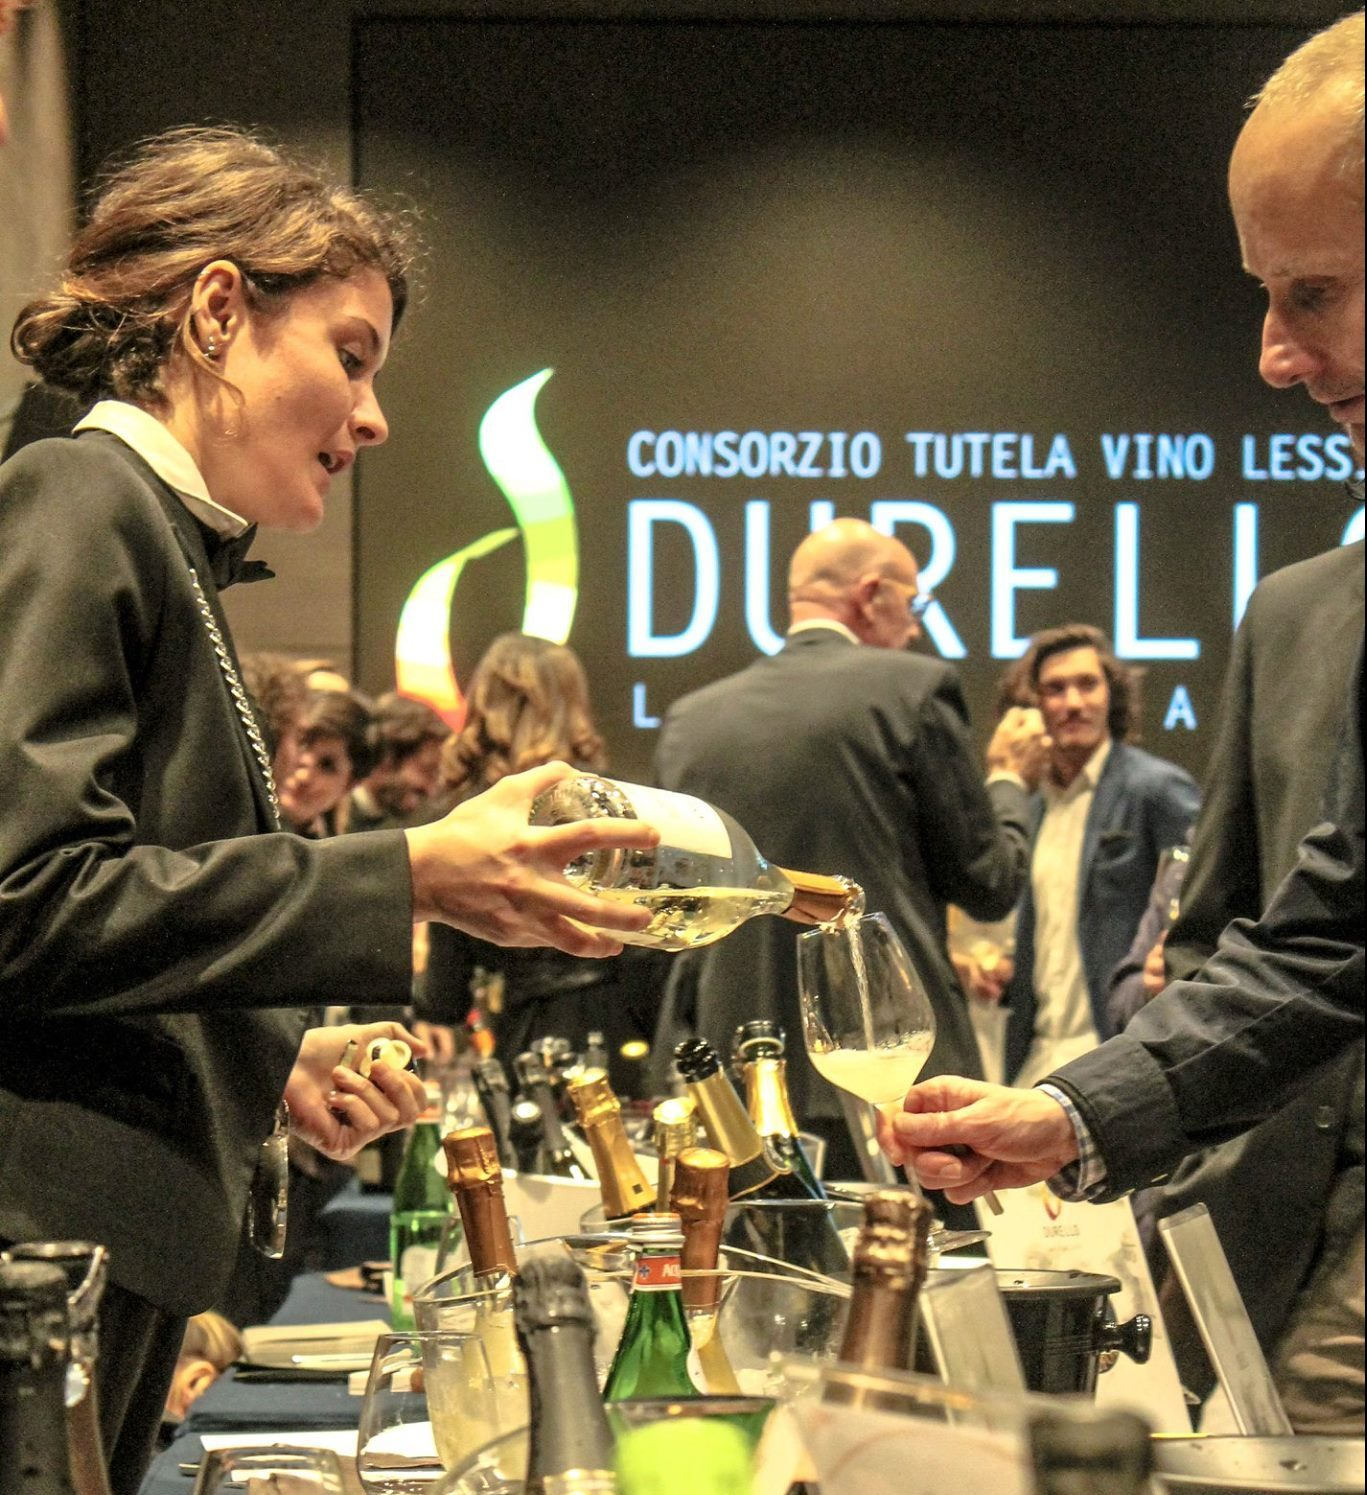 Durello and Friends: a ottobre, doppio appuntamento!